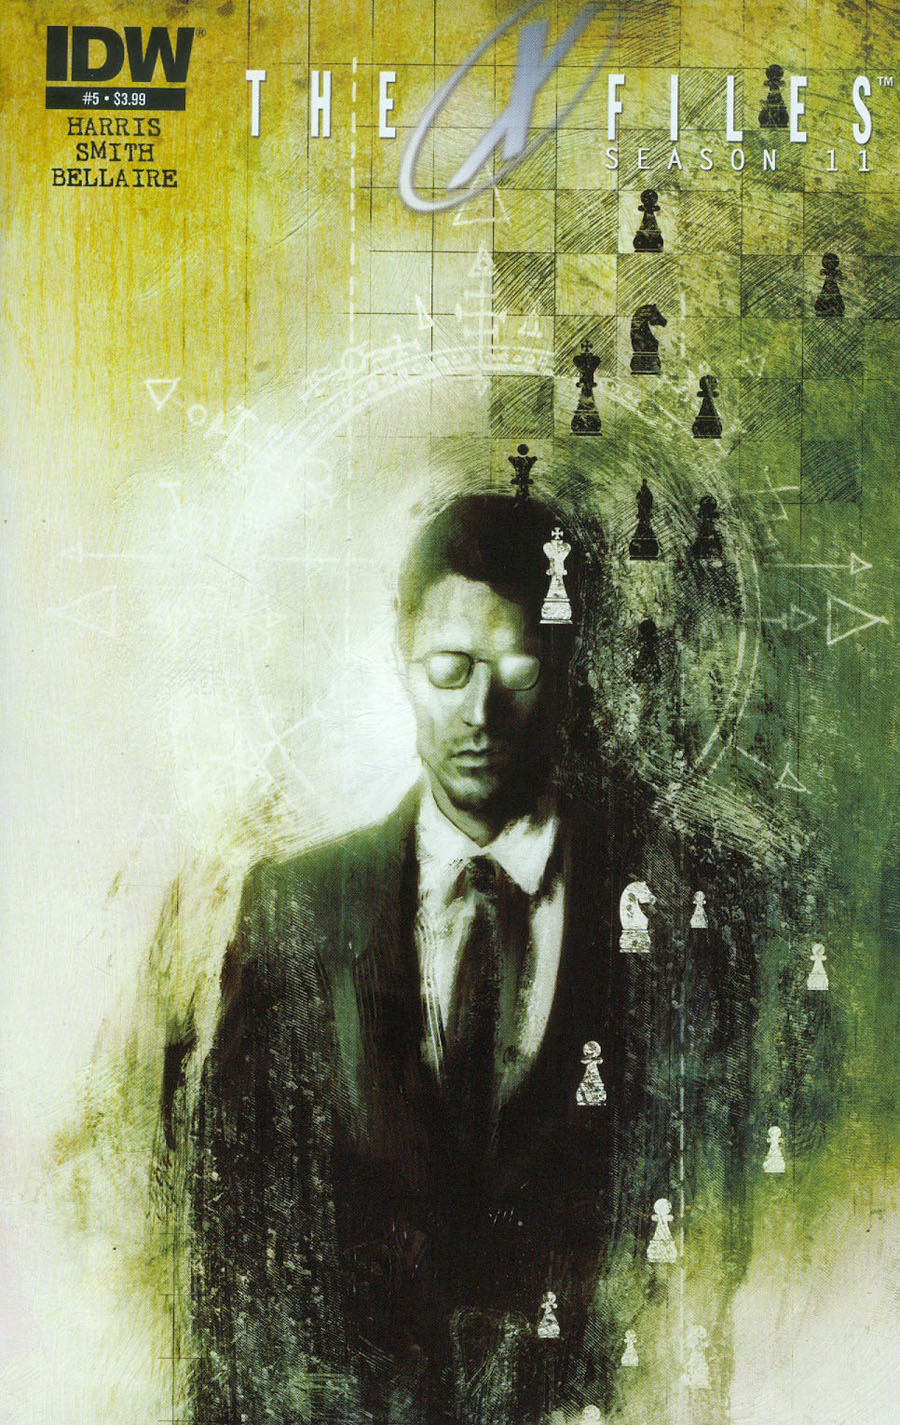 X-Files Season 11 #5 Cover A Regular Menton3 Cover